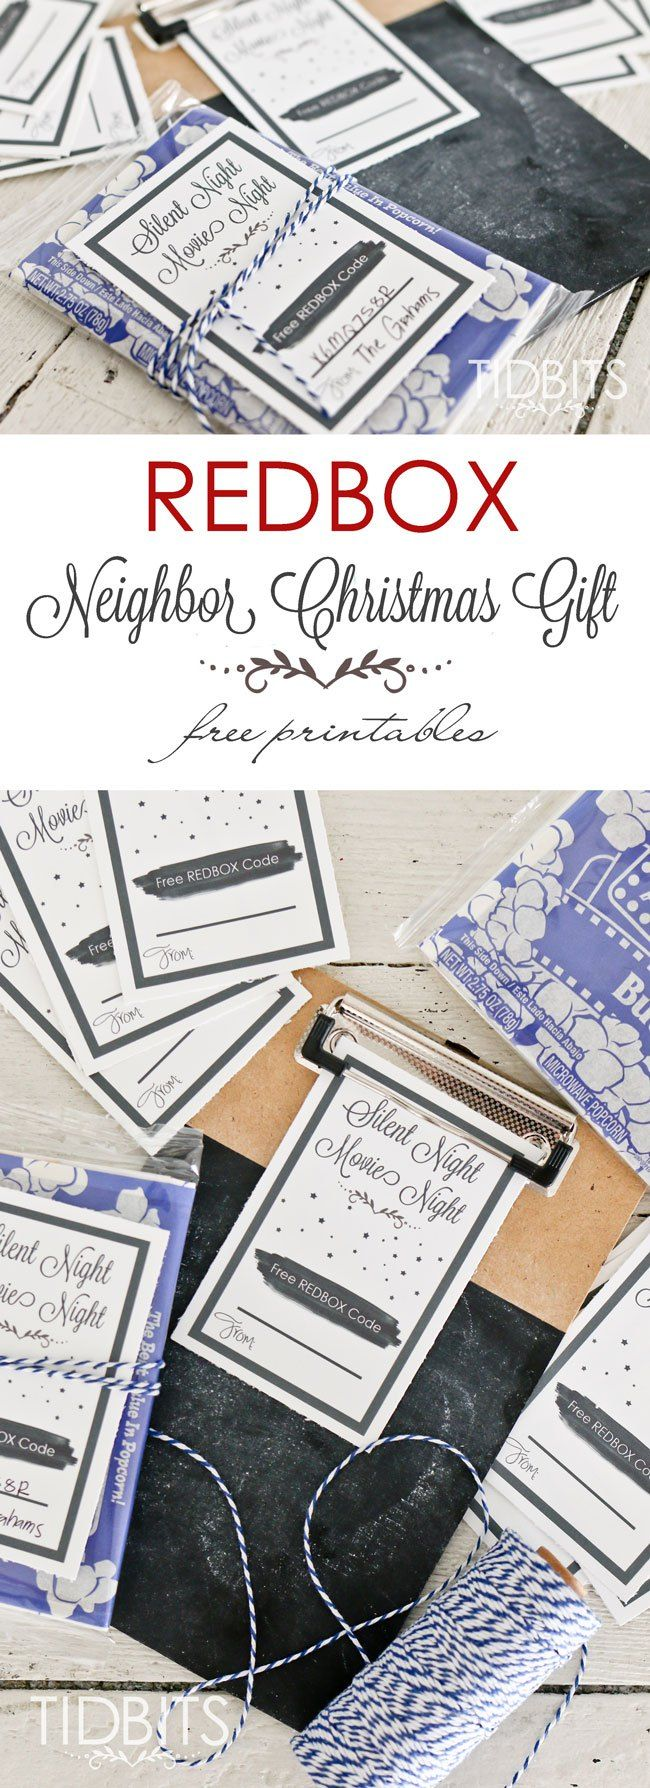 109 best Christmas - Neighbor Gifts images on Pinterest | Christmas ...